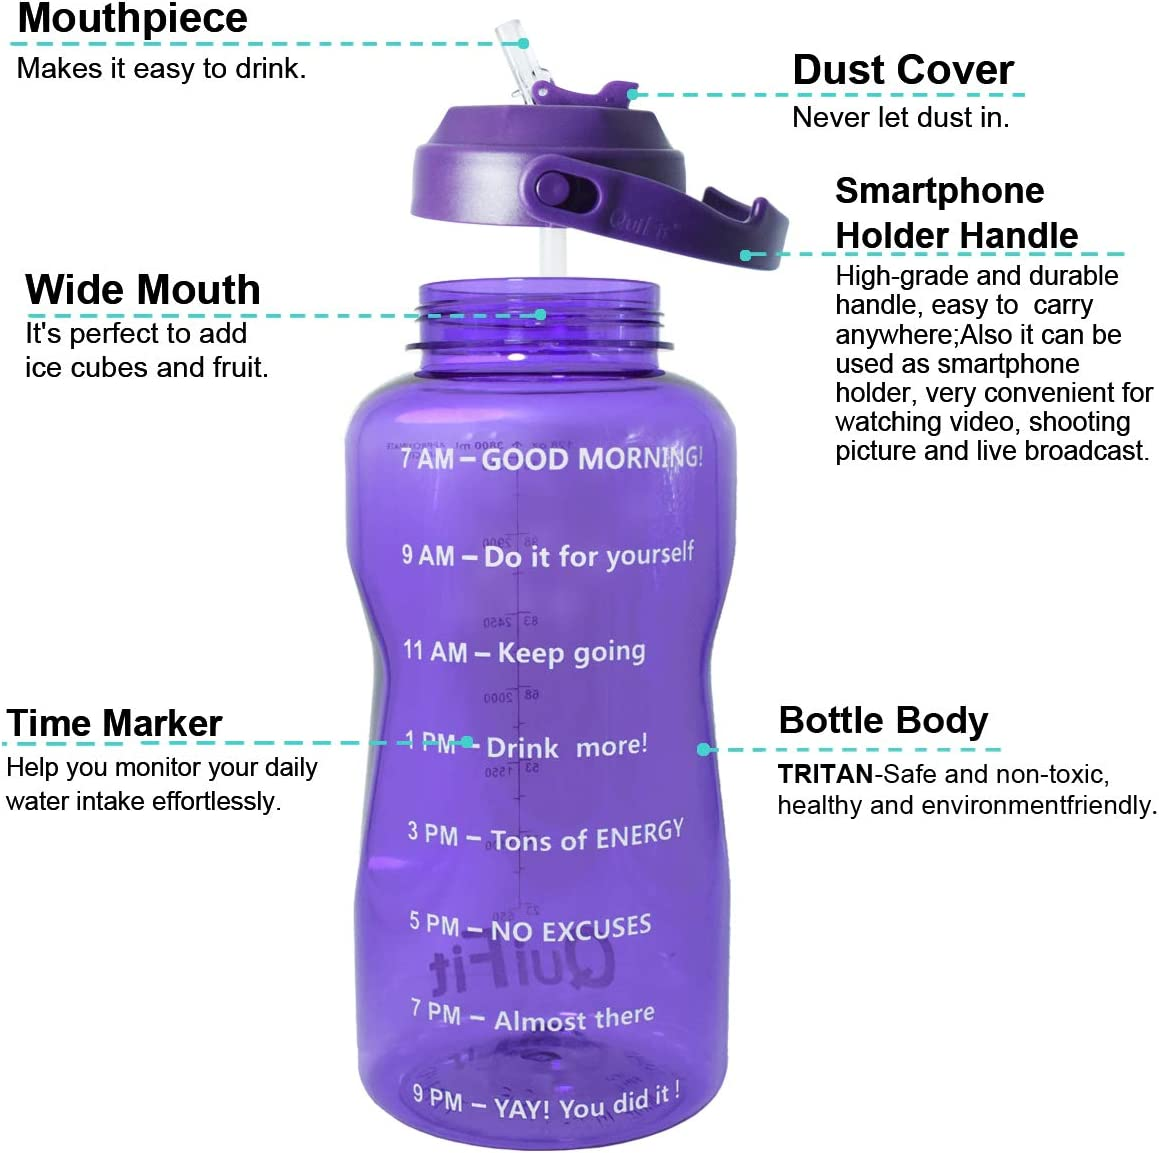 QuiFit Motivational Gallon Water Bottle with Straw /& Time Marker BPA Free 128//64 oz Large Water Jug Leak-Proof Durable for Fitness Outdoor Enthusiasts